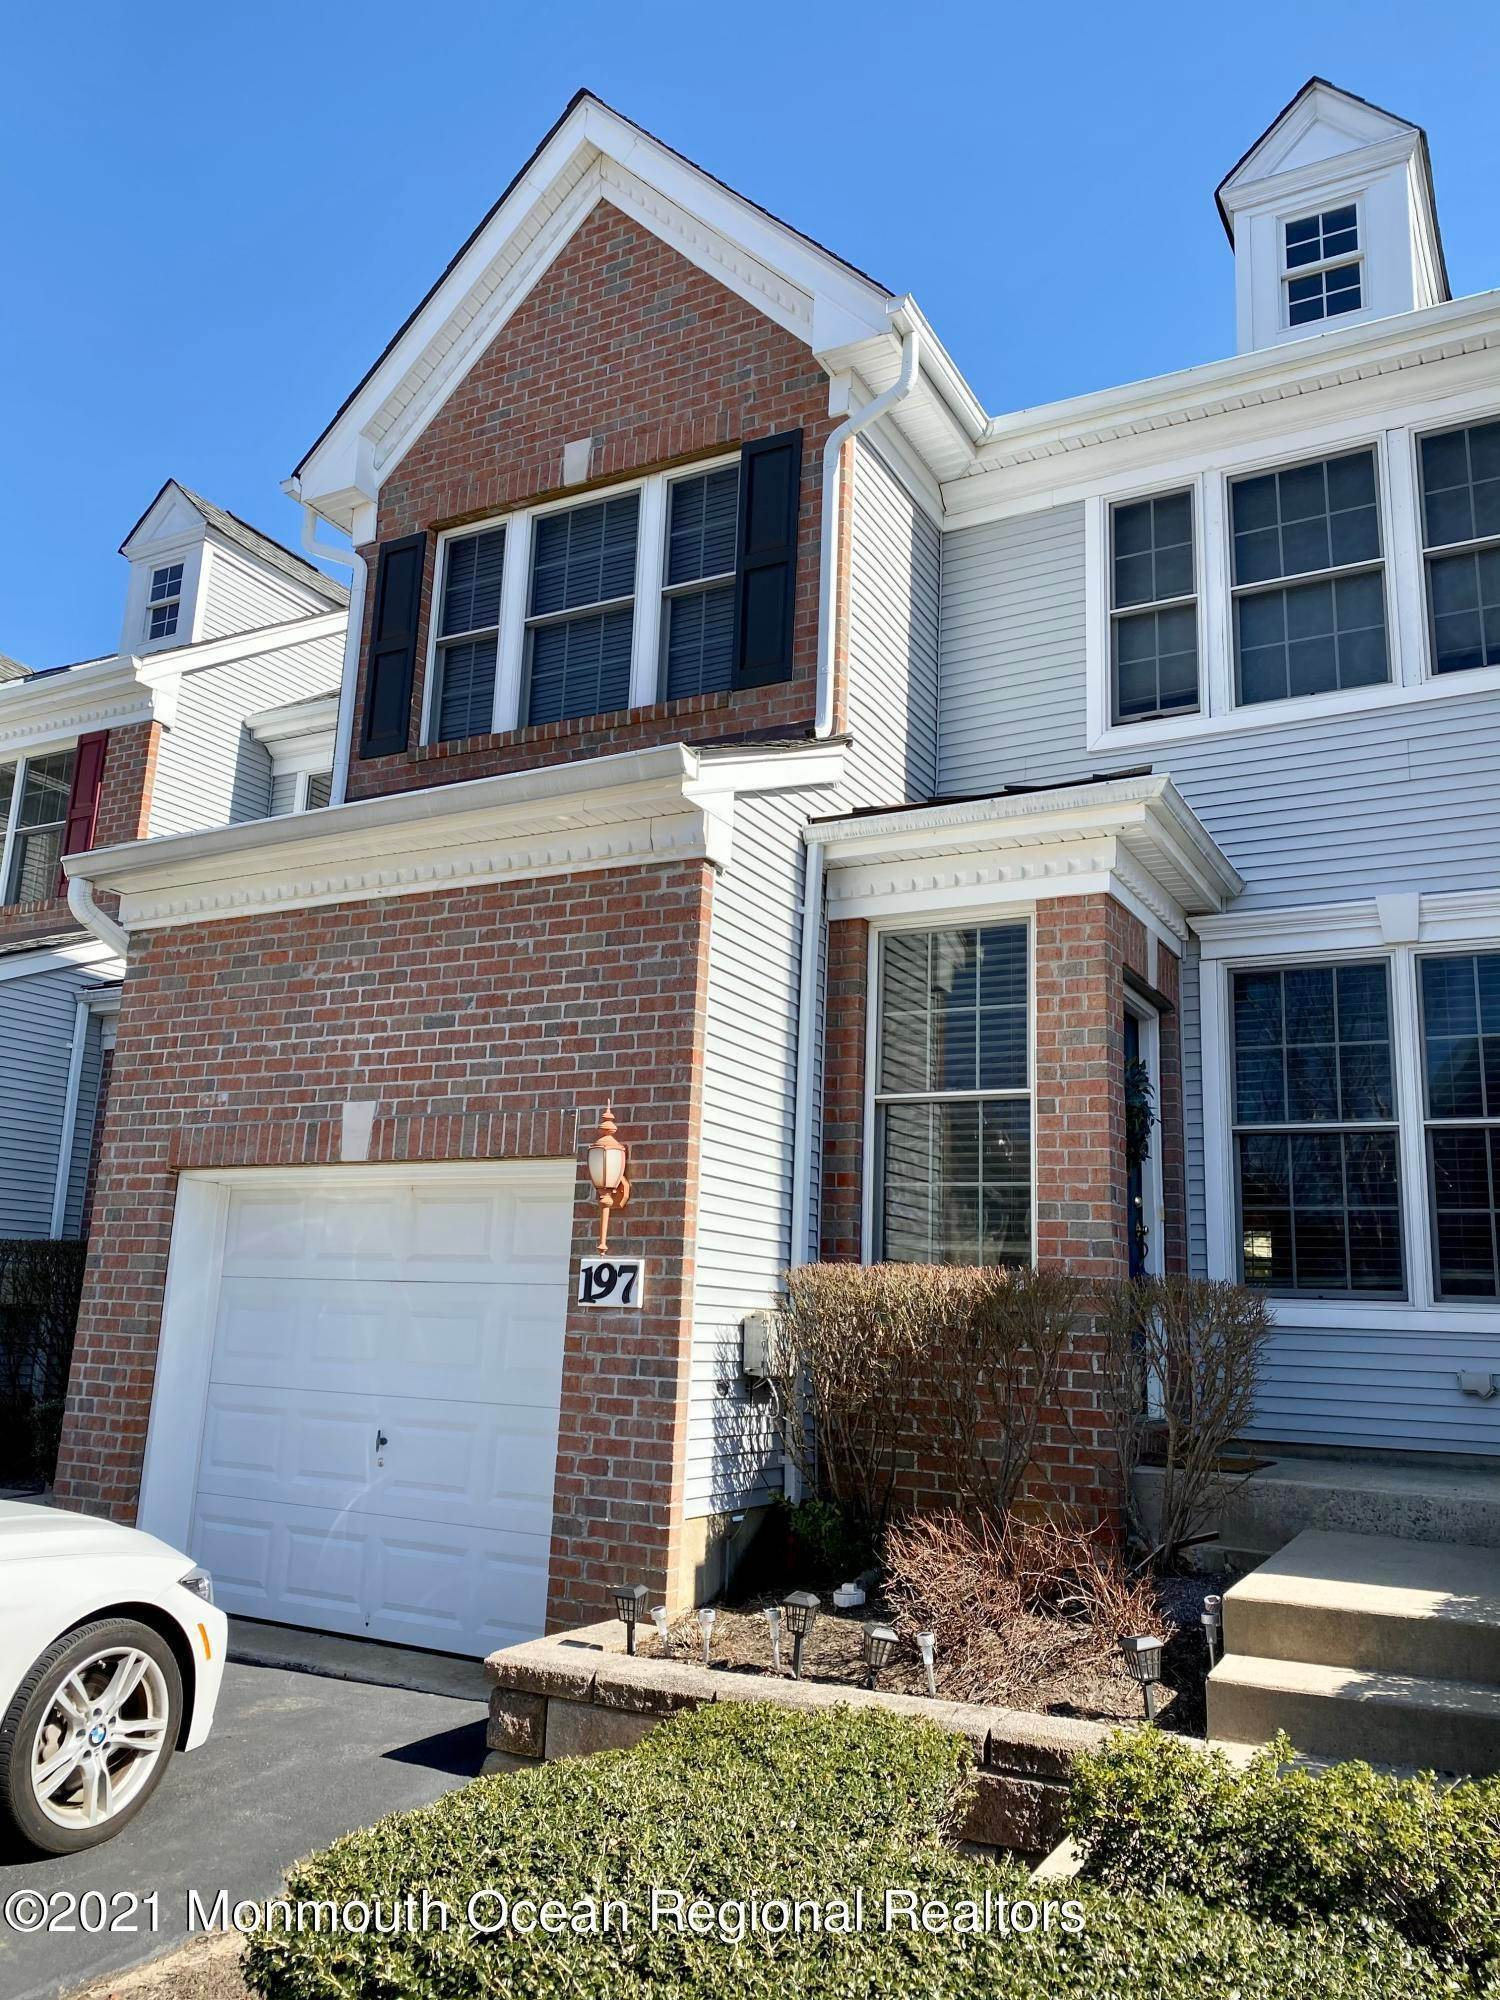 Condominiums for Sale at 197 Deepwater Circle Manalapan, New Jersey 07726 United States